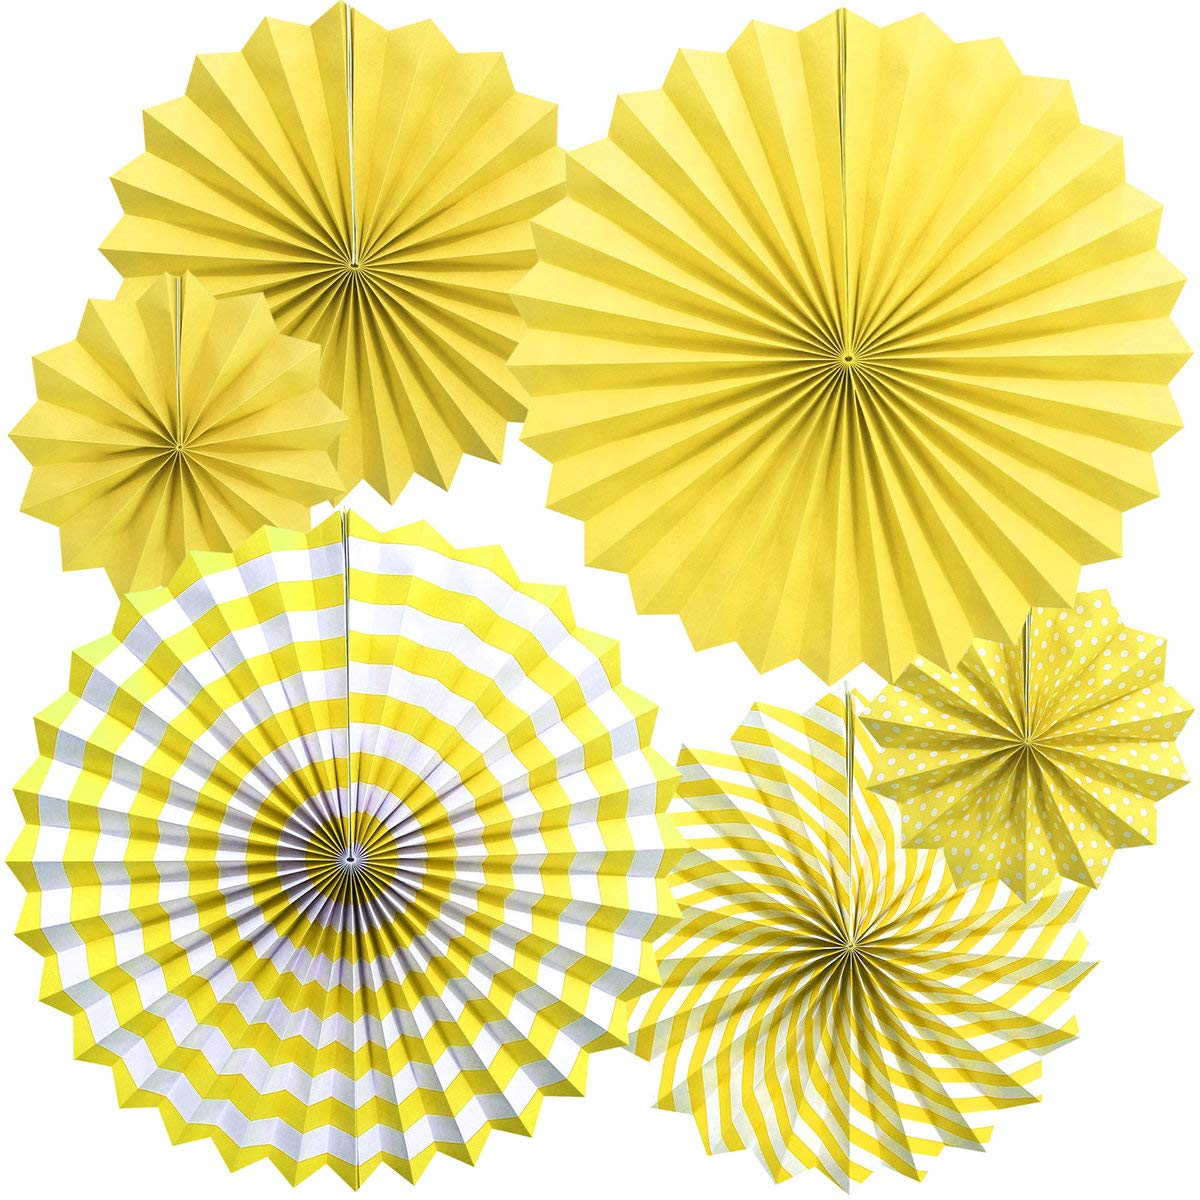 Zolee Hanging Paper Fans Decorations Kit for Wall - Set of 6 Circle Rosettes Tissue Paper Fans Bulk for Party Favors, Wedding, Birthday, Festival, Christmas, Events, Home Decor (Yellow)